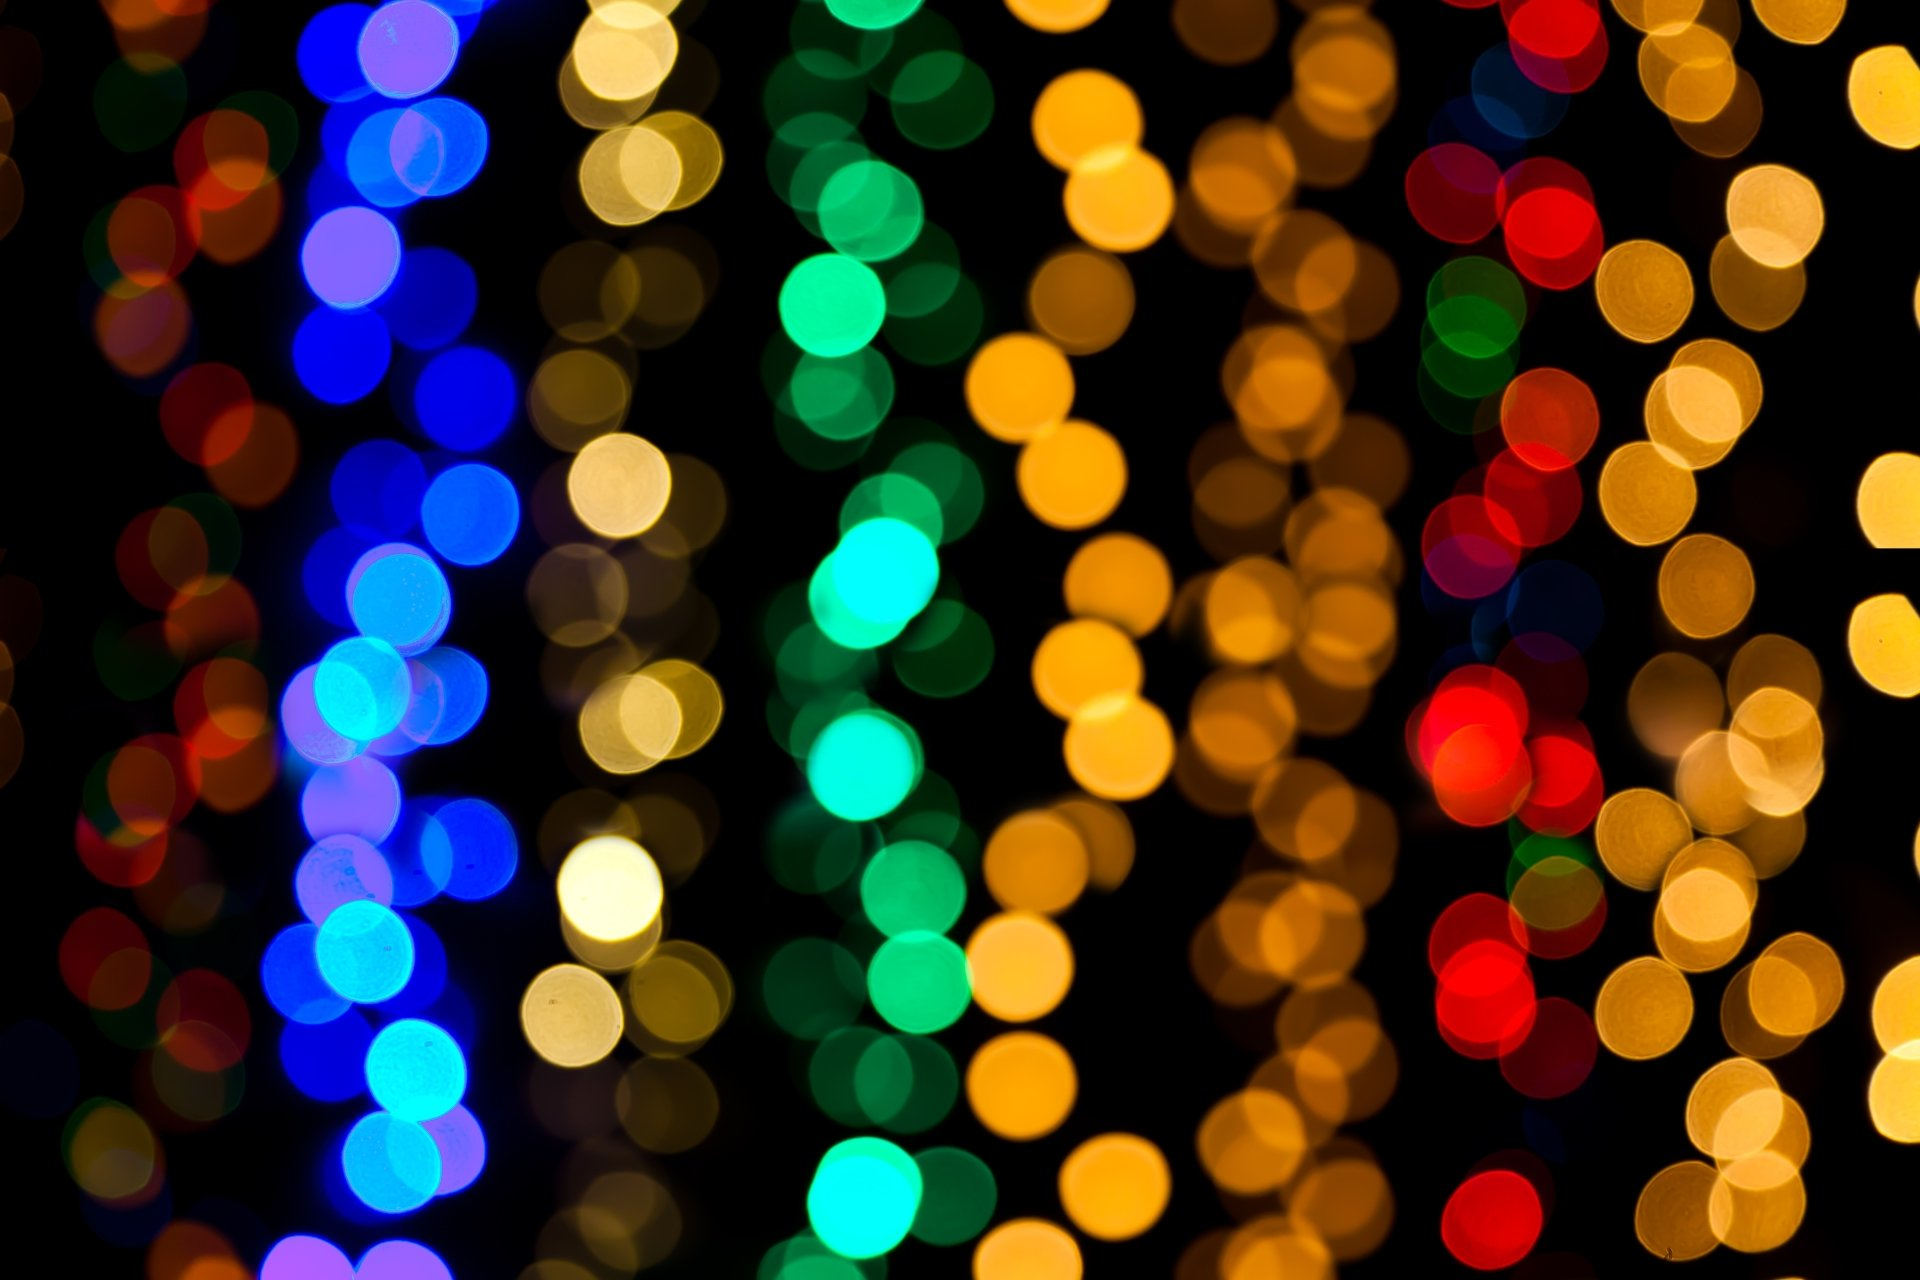 Artistic - Bokeh  Artistic Light Colors Colorful Circle Wallpaper